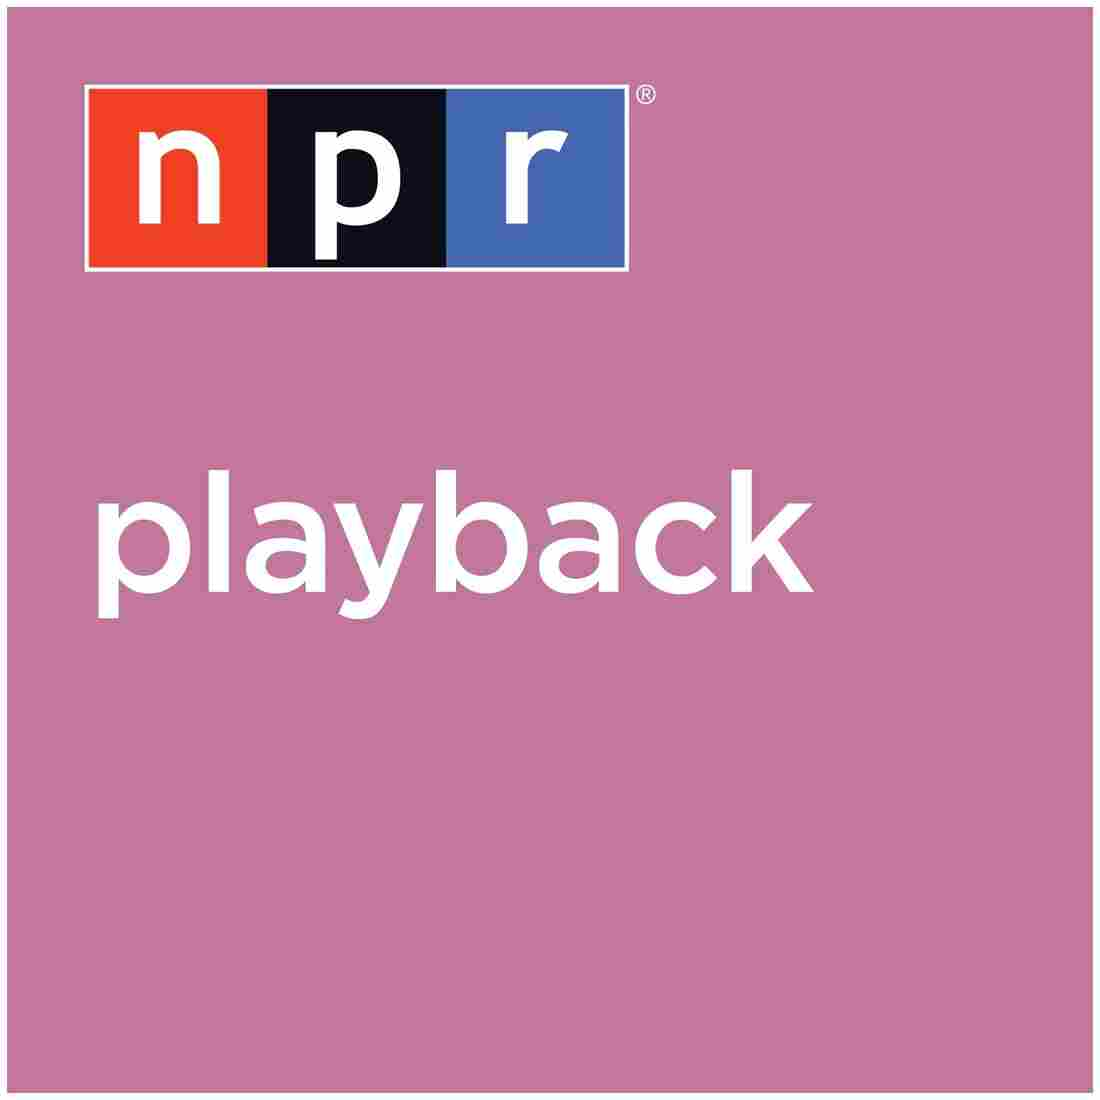 Playback podcast icon.